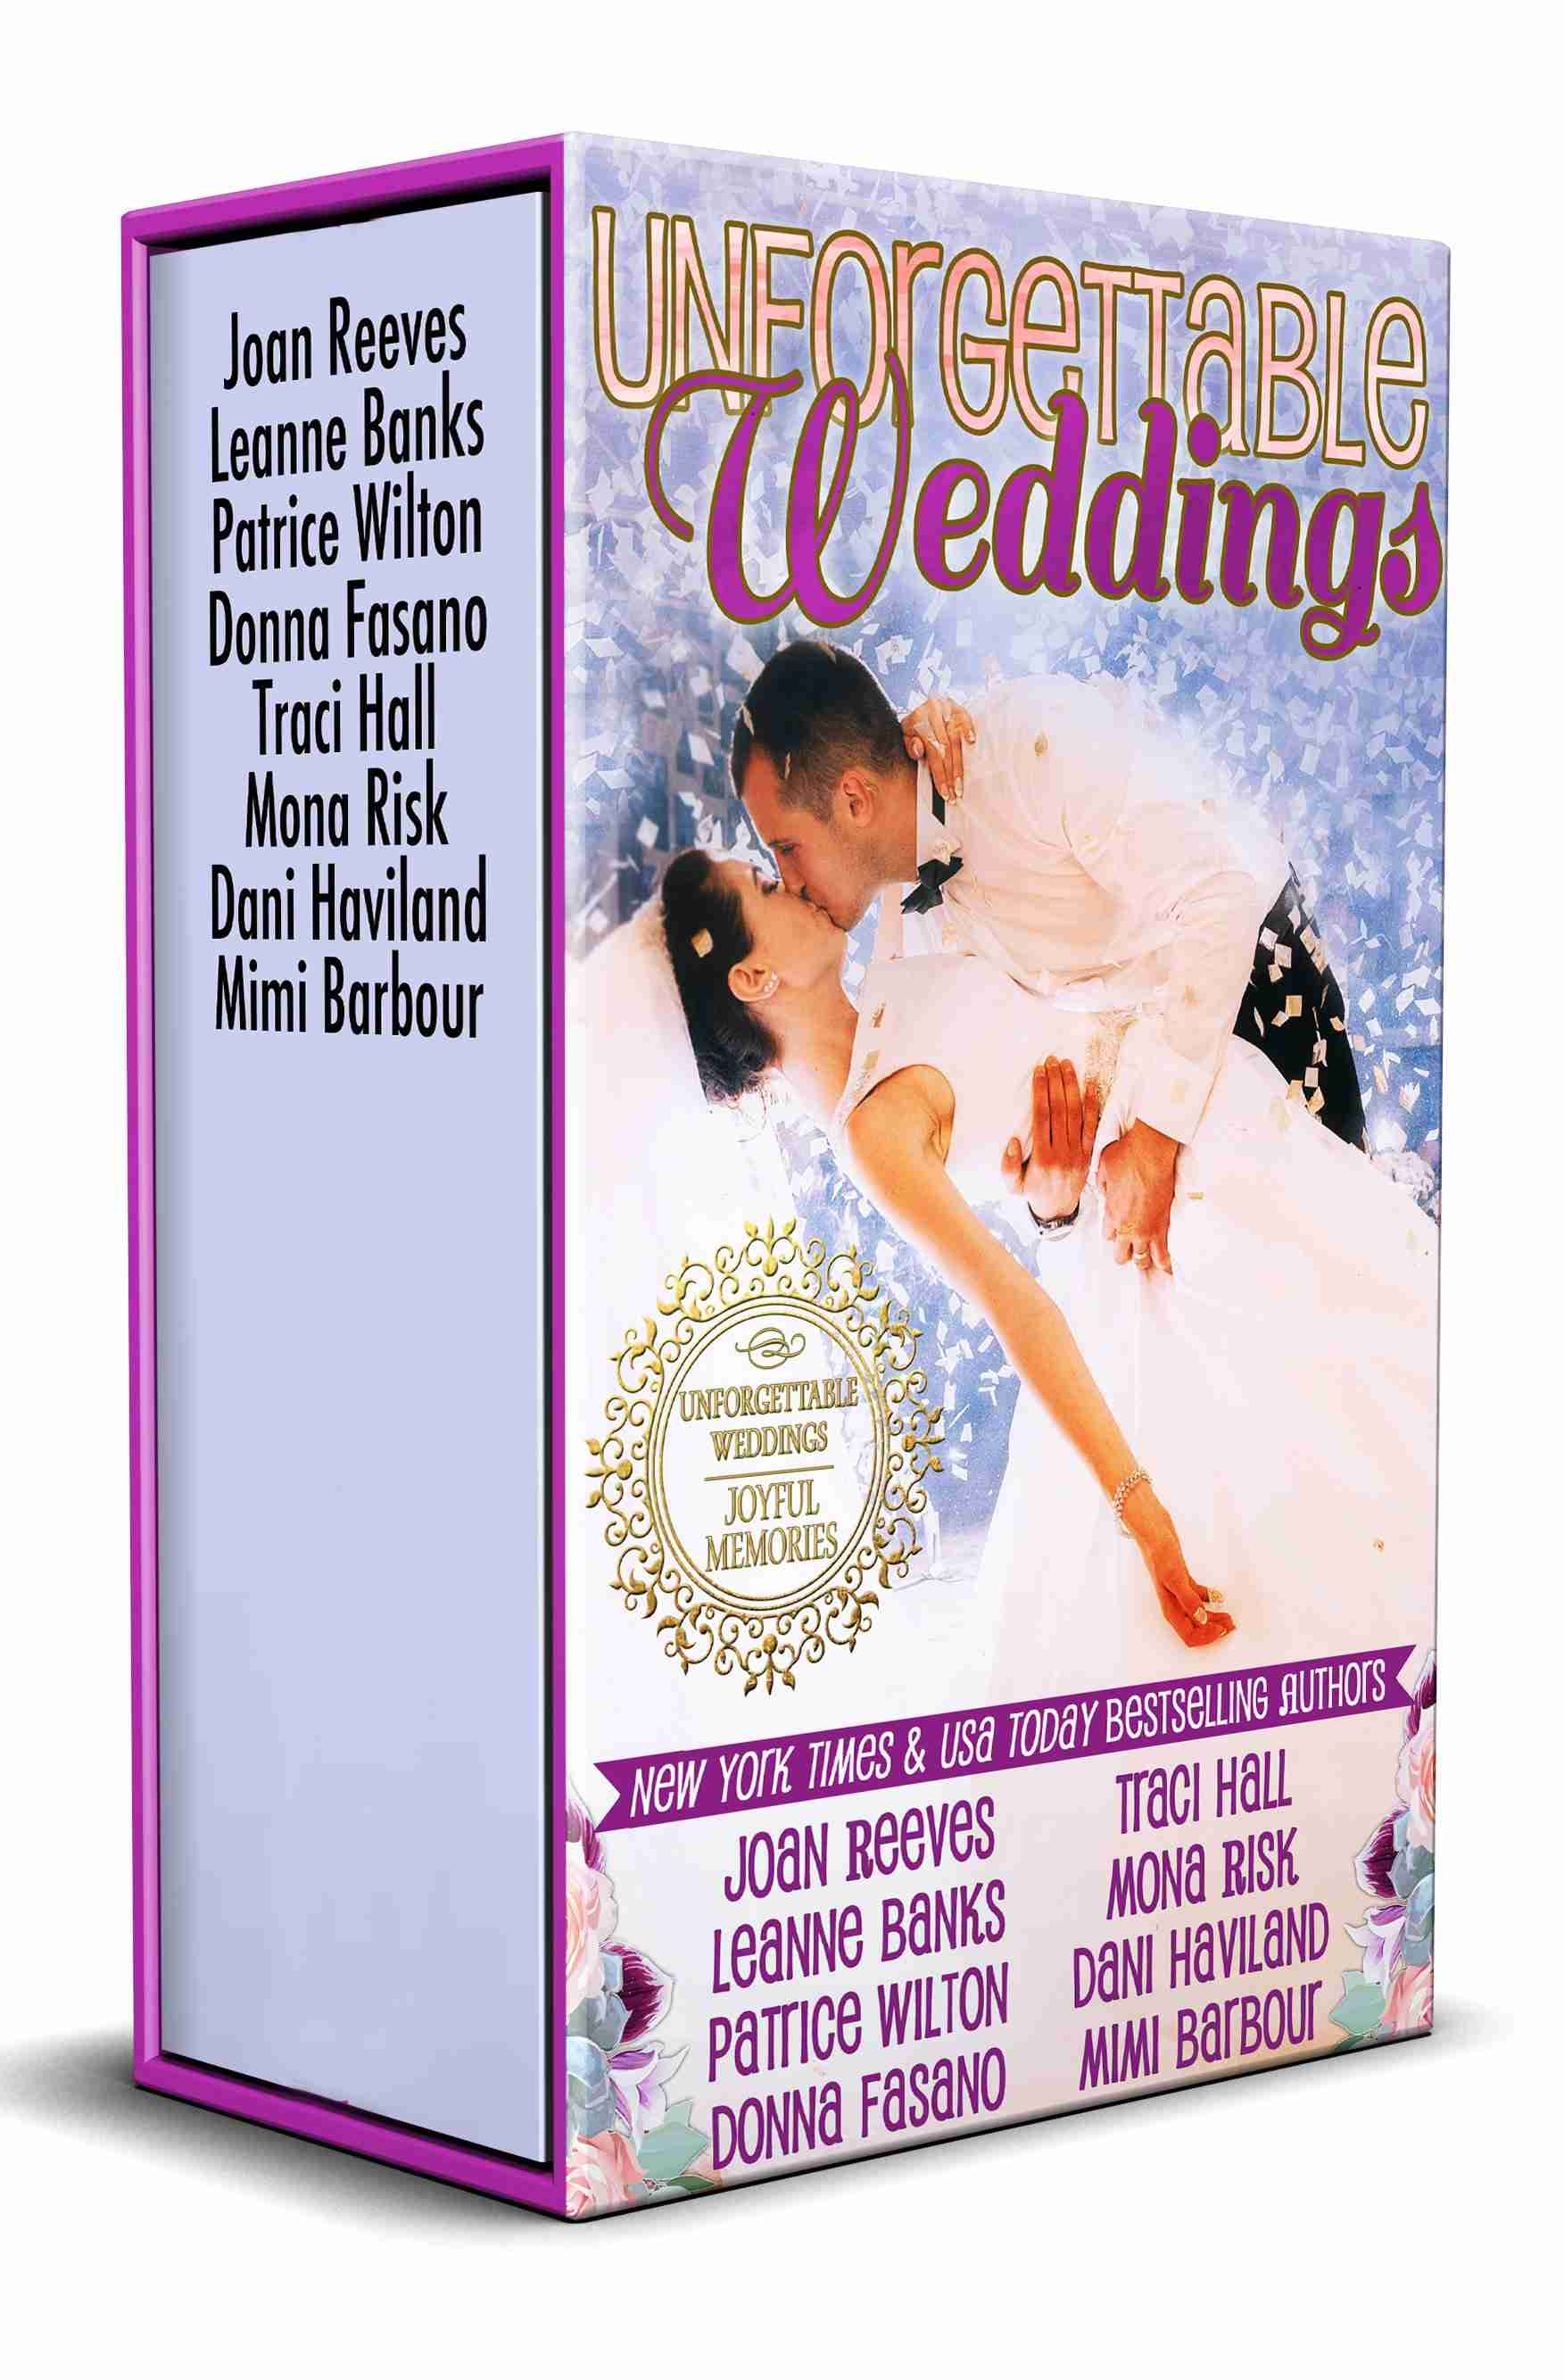 UnforgetWeddingsNEW